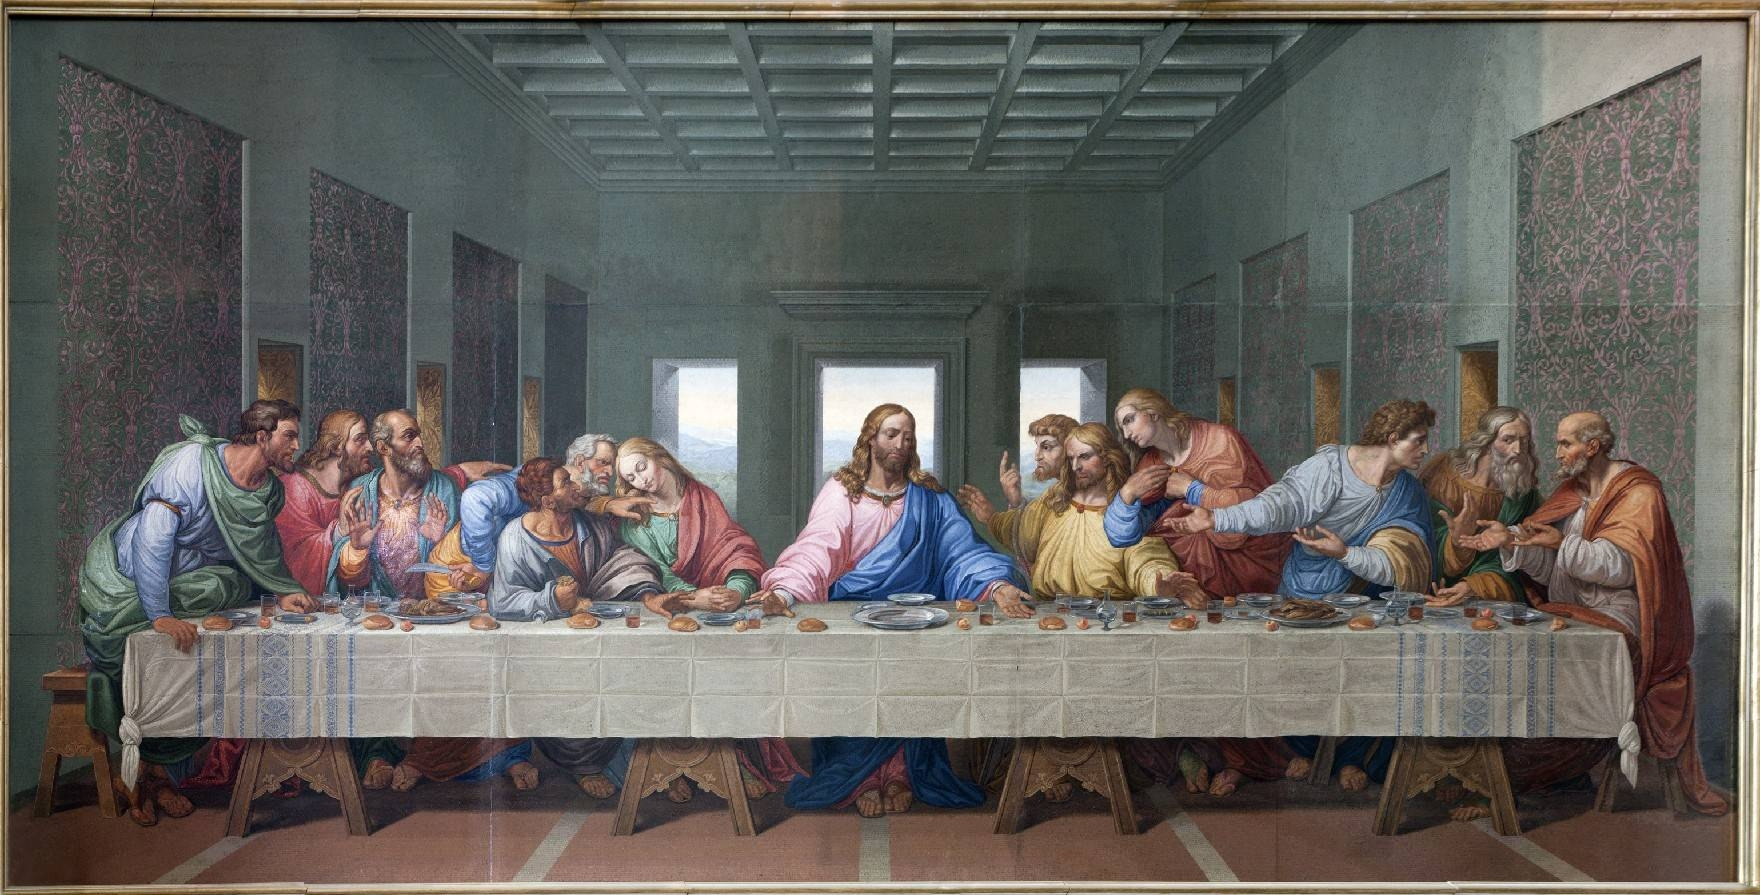 Adorable 60+ The Last Supper Wall Art Design Decoration Of Last Pertaining To Recent The Last Supper Wall Art (View 1 of 20)